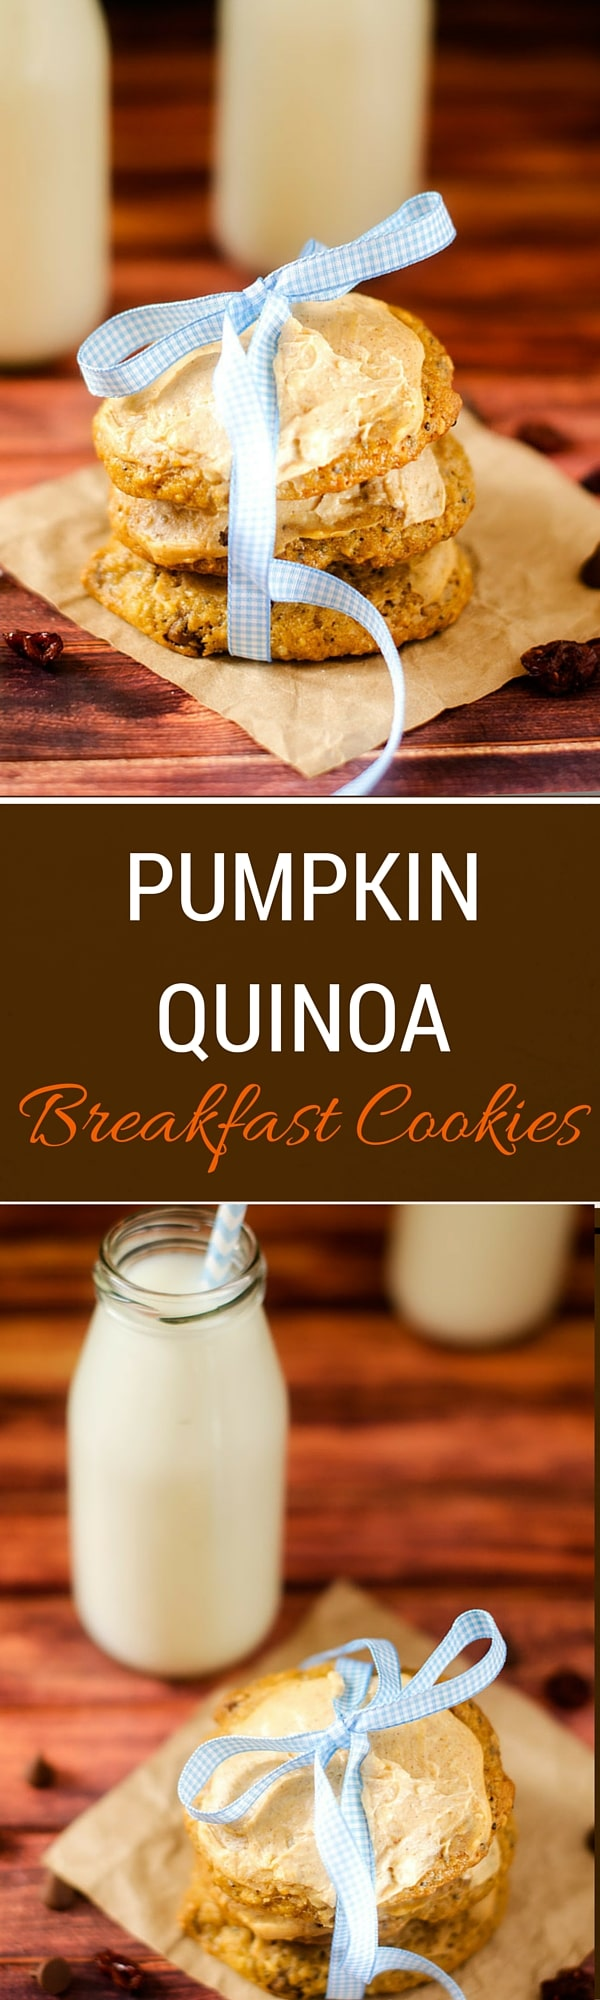 Pumpkin Quinoa Breakfast Cookies